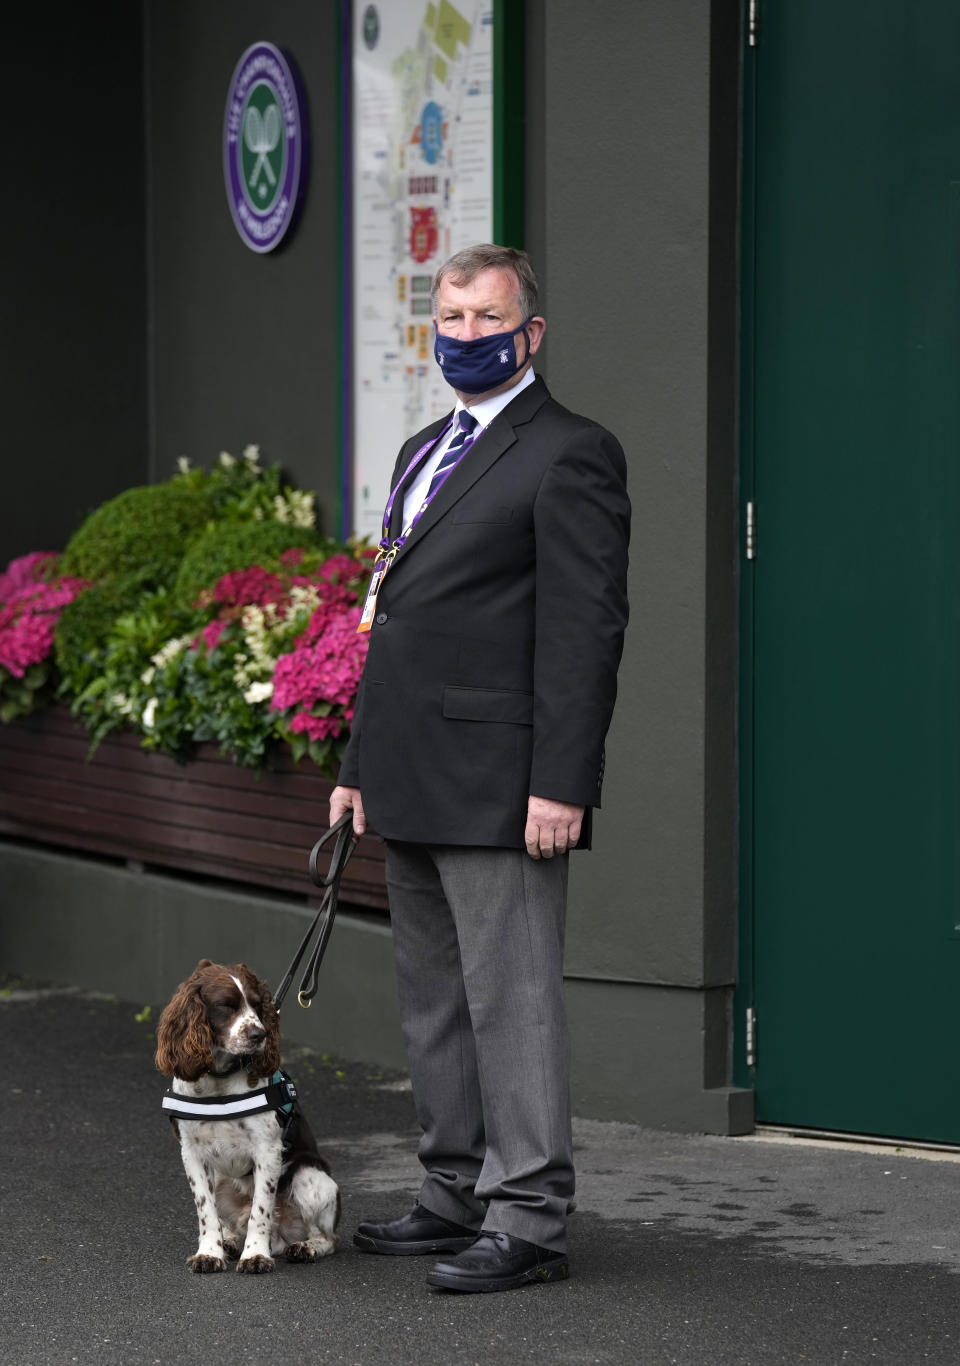 A security dog in the grounds on day one of the Wimbledon Tennis Championships in London, Monday June 28, 2021. (AP Photo/Kirsty Wigglesworth)